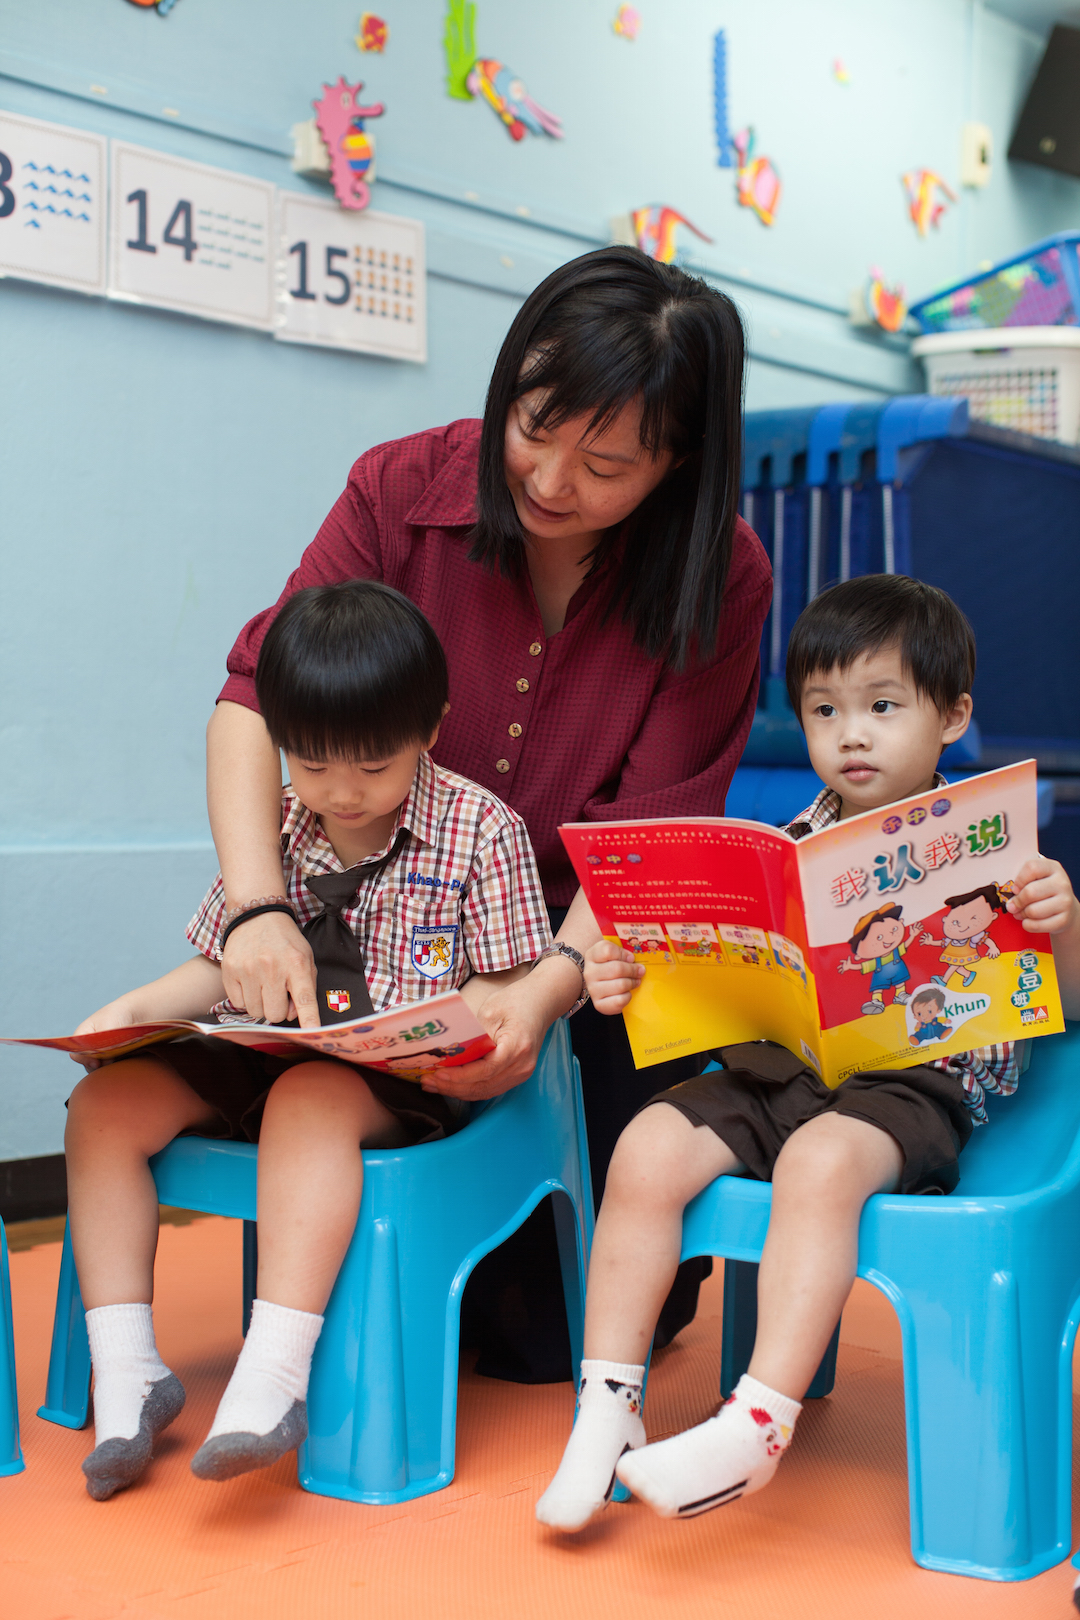 kindergarten readiness skills promotes academic achievement in language and literacy development ess Kindergarten readiness: social and emotional development  language and literacy cognition and general knowledge and physical development and health  school readiness skills most directly .